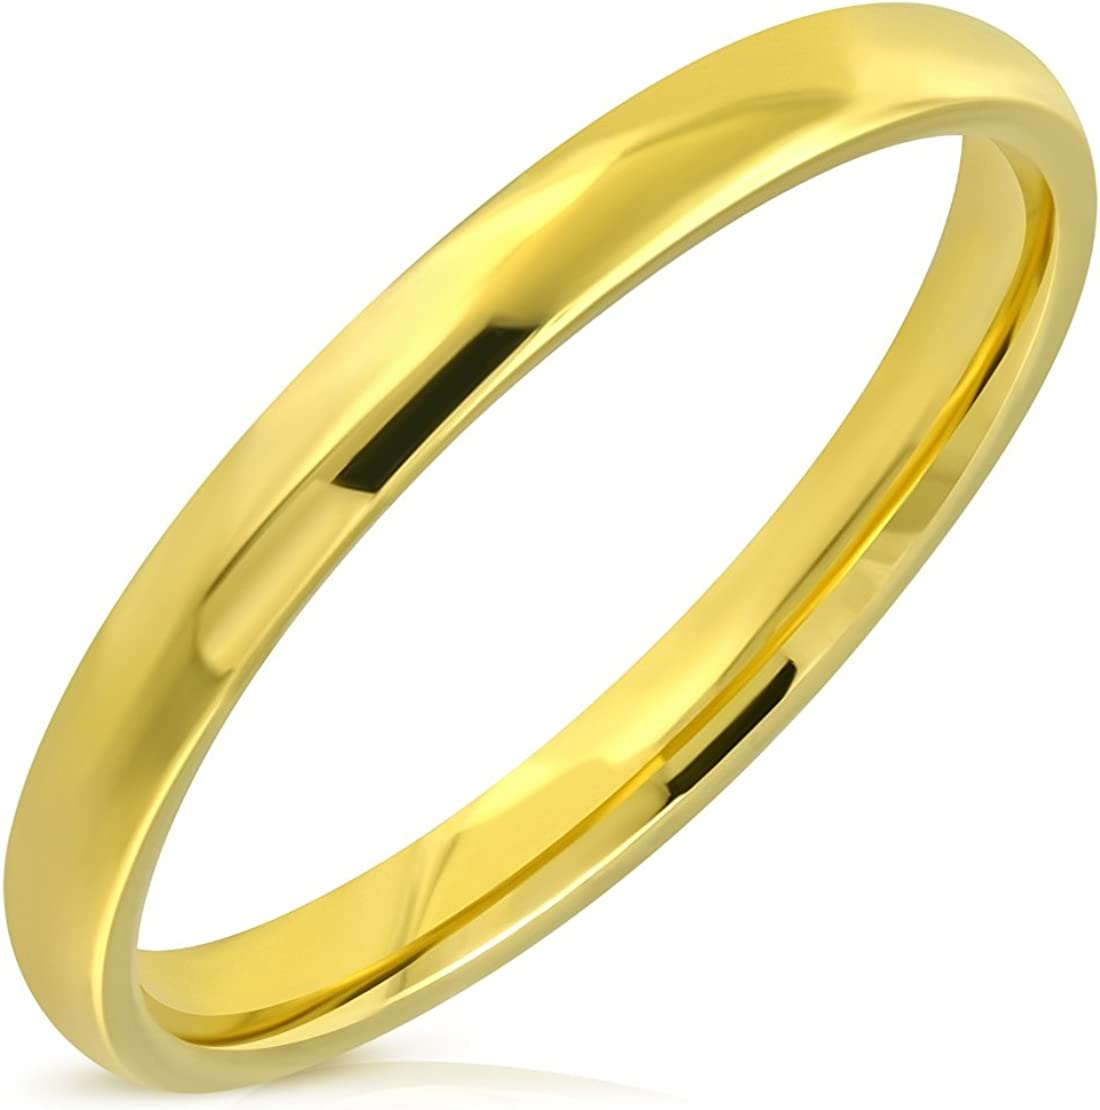 Stainless Steel Gold Color Plated Comfort Fit Half-Round Wedding Band Ring